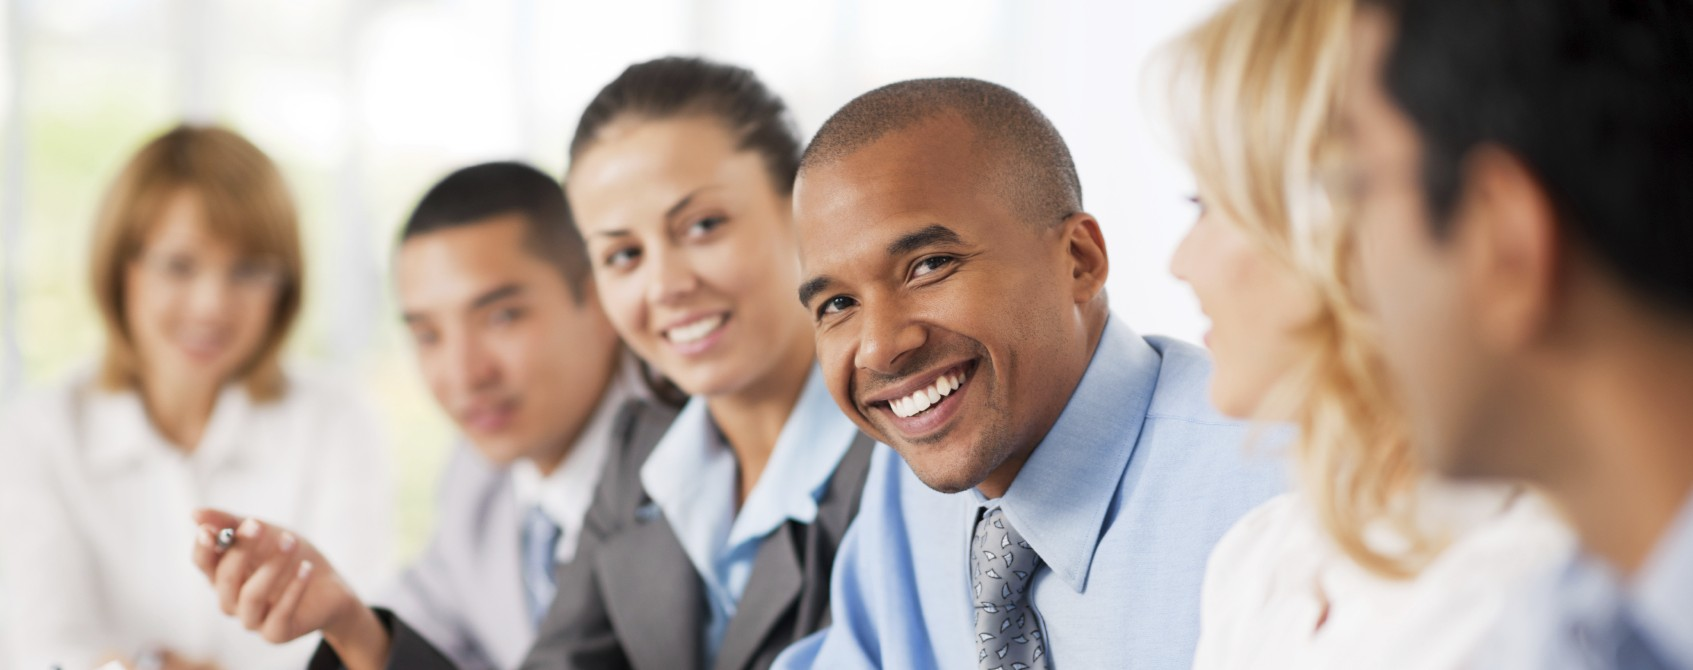 Insurance Brokers - We're here to help you!